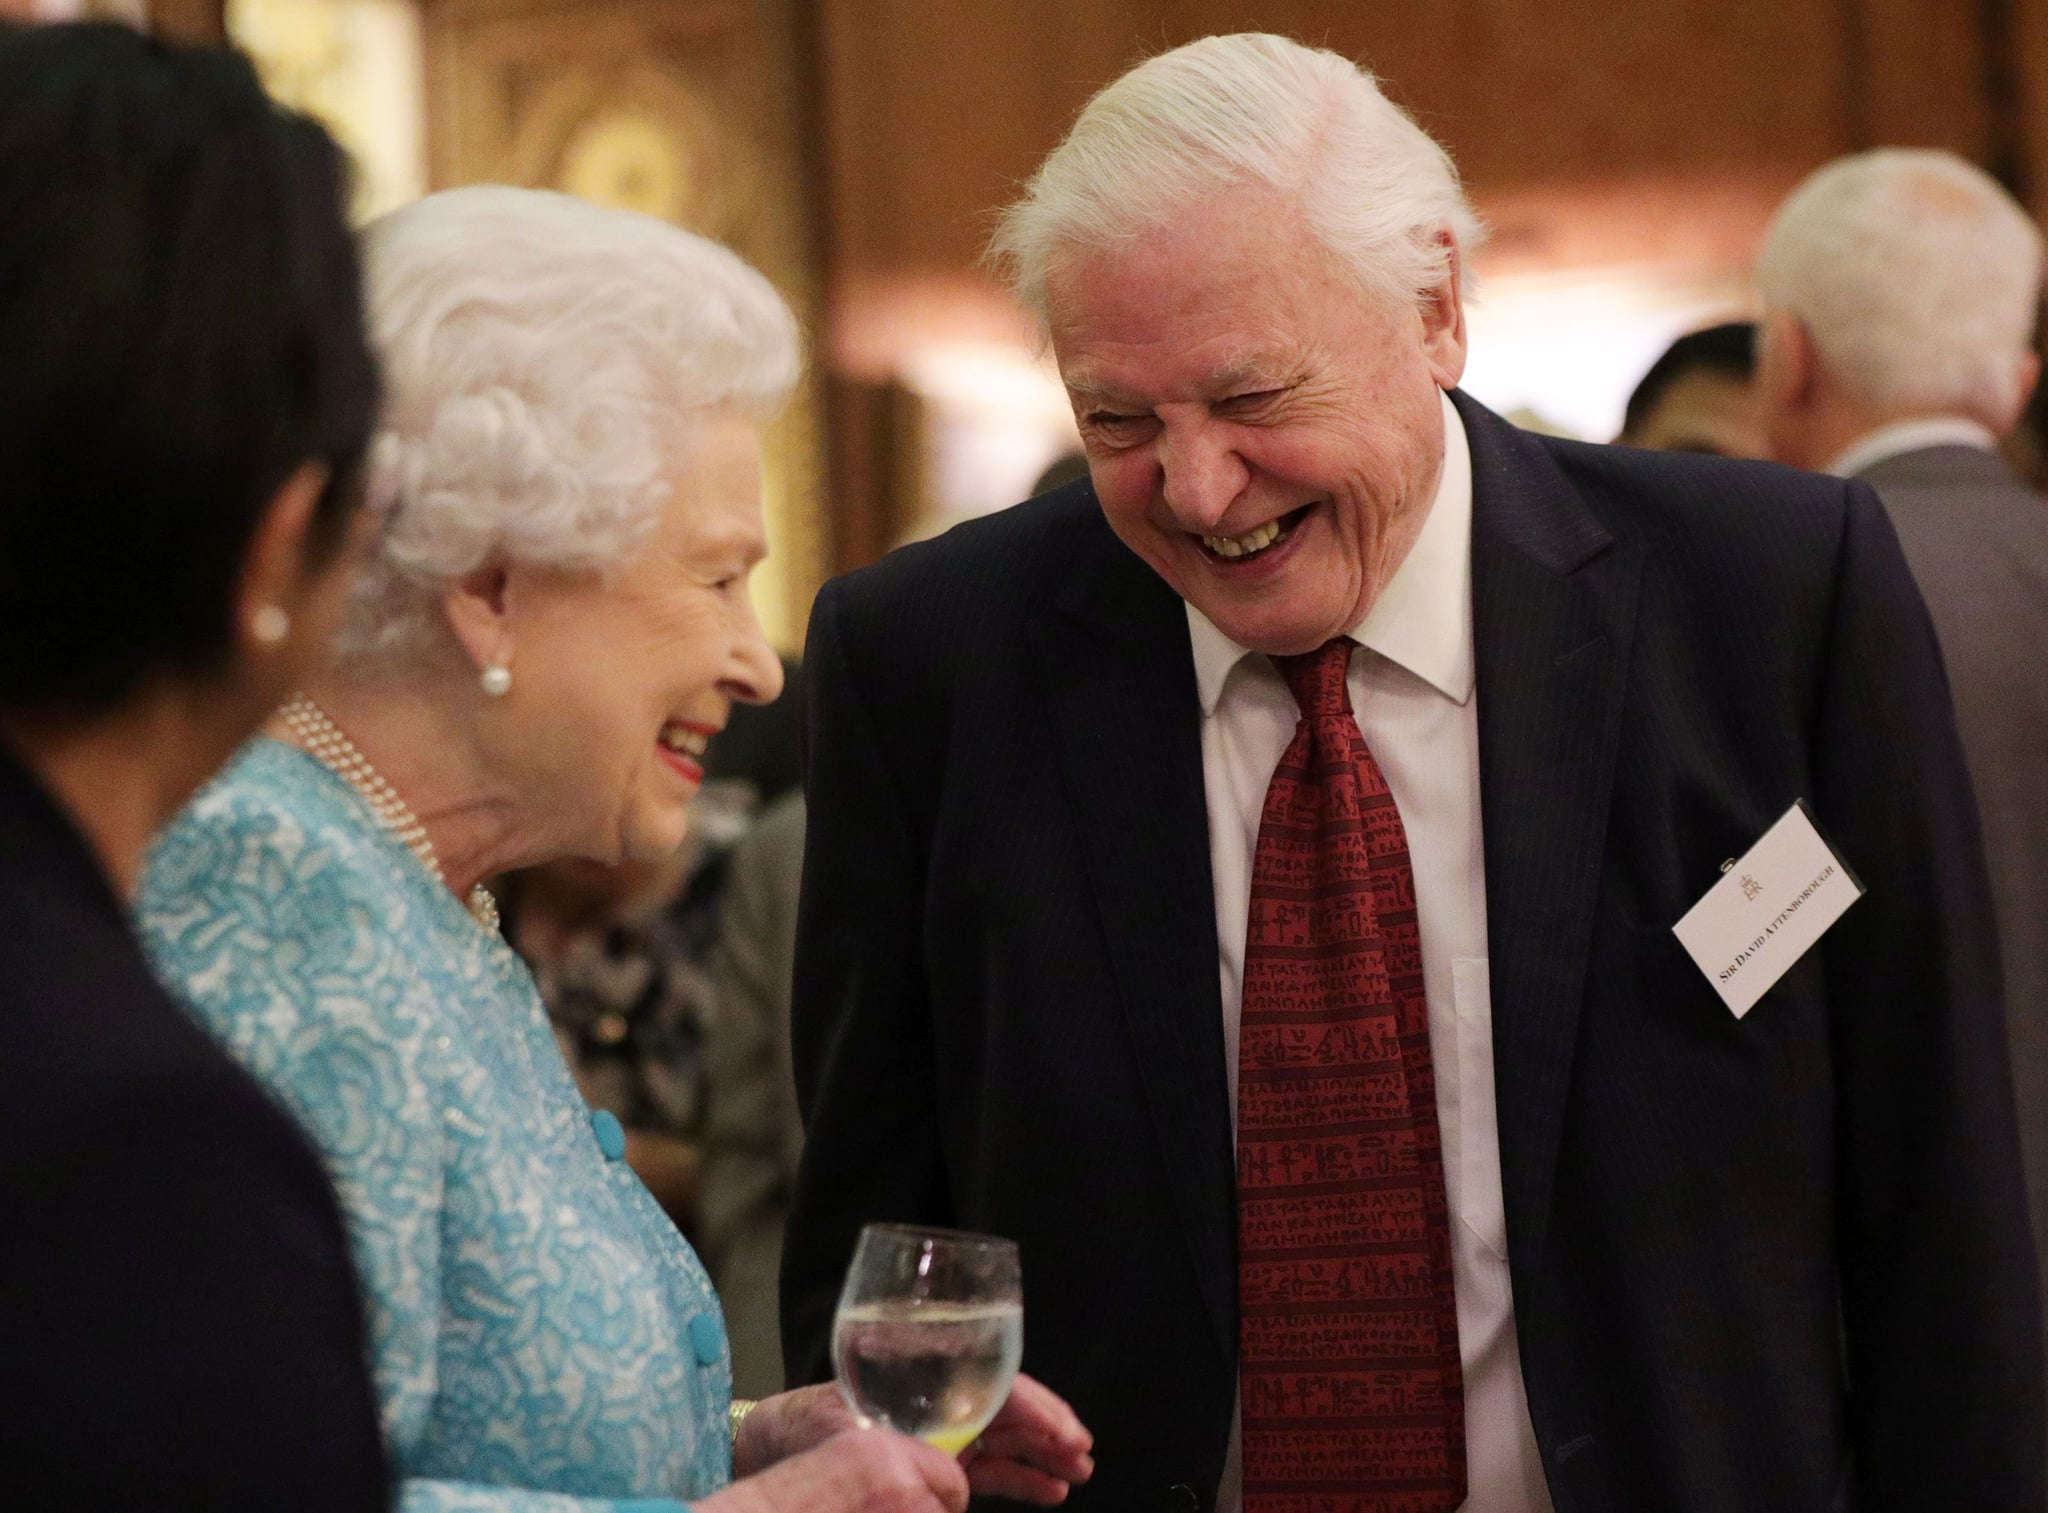 Britain's Queen Elizabeth II (L) reacts as she talks with television presenter David Attenborough during an event at Buckingham Palace in central London on November 15, 2016, to showcase forestry projects that have been dedicated to the new conservation initiative - The Queen's Commonwealth Canopy